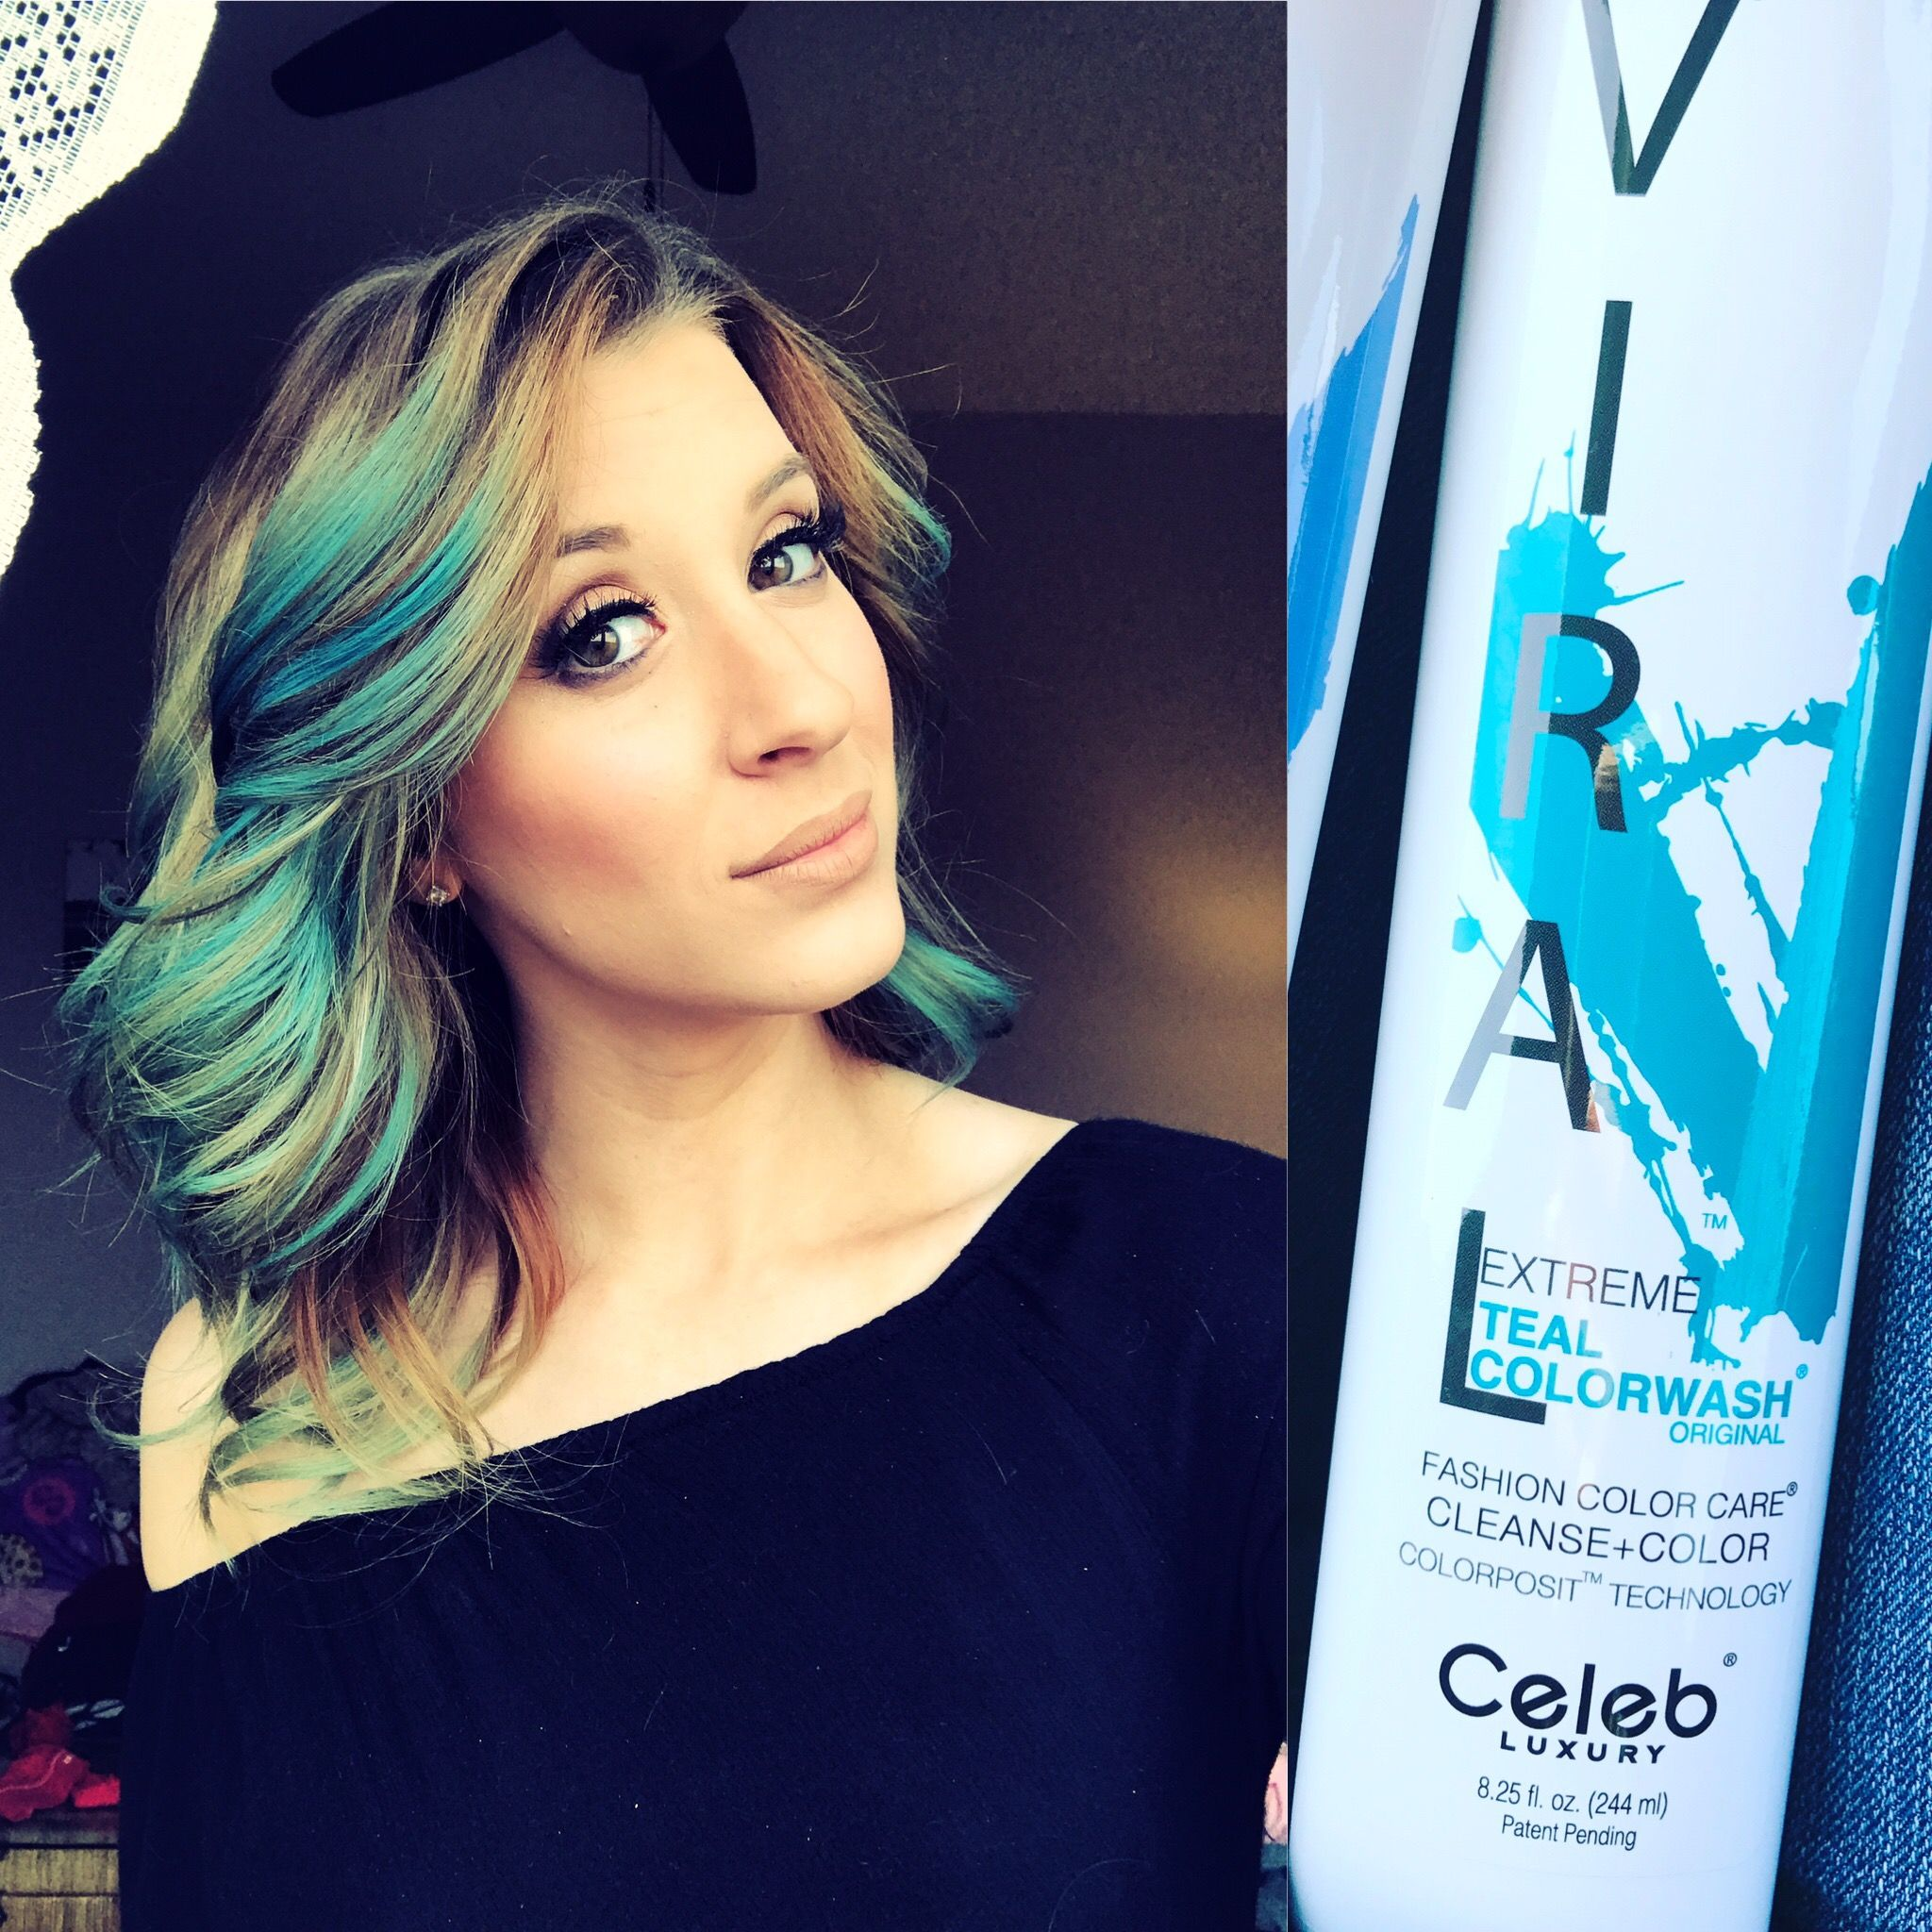 Viral colorwash shampoo colors blonde hair temporarily. All it takes ...